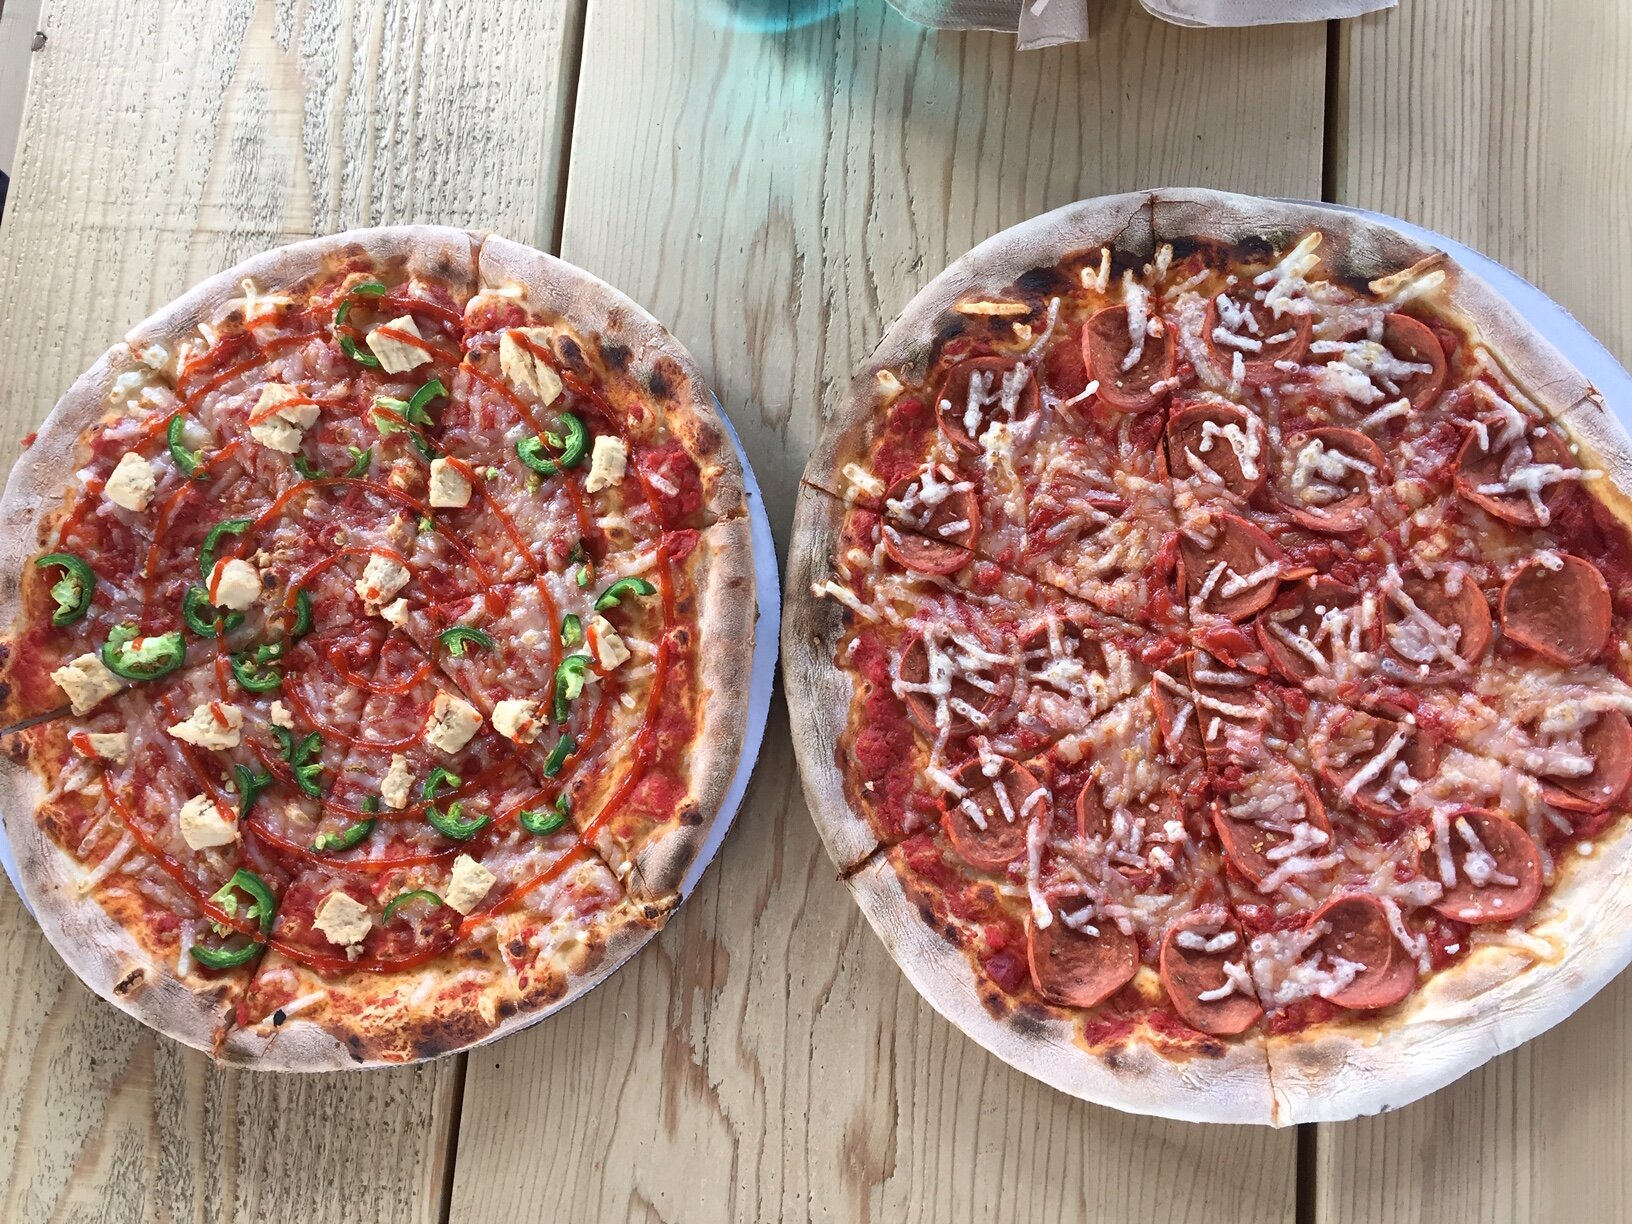 Vegan pizzas from Freak Brothers